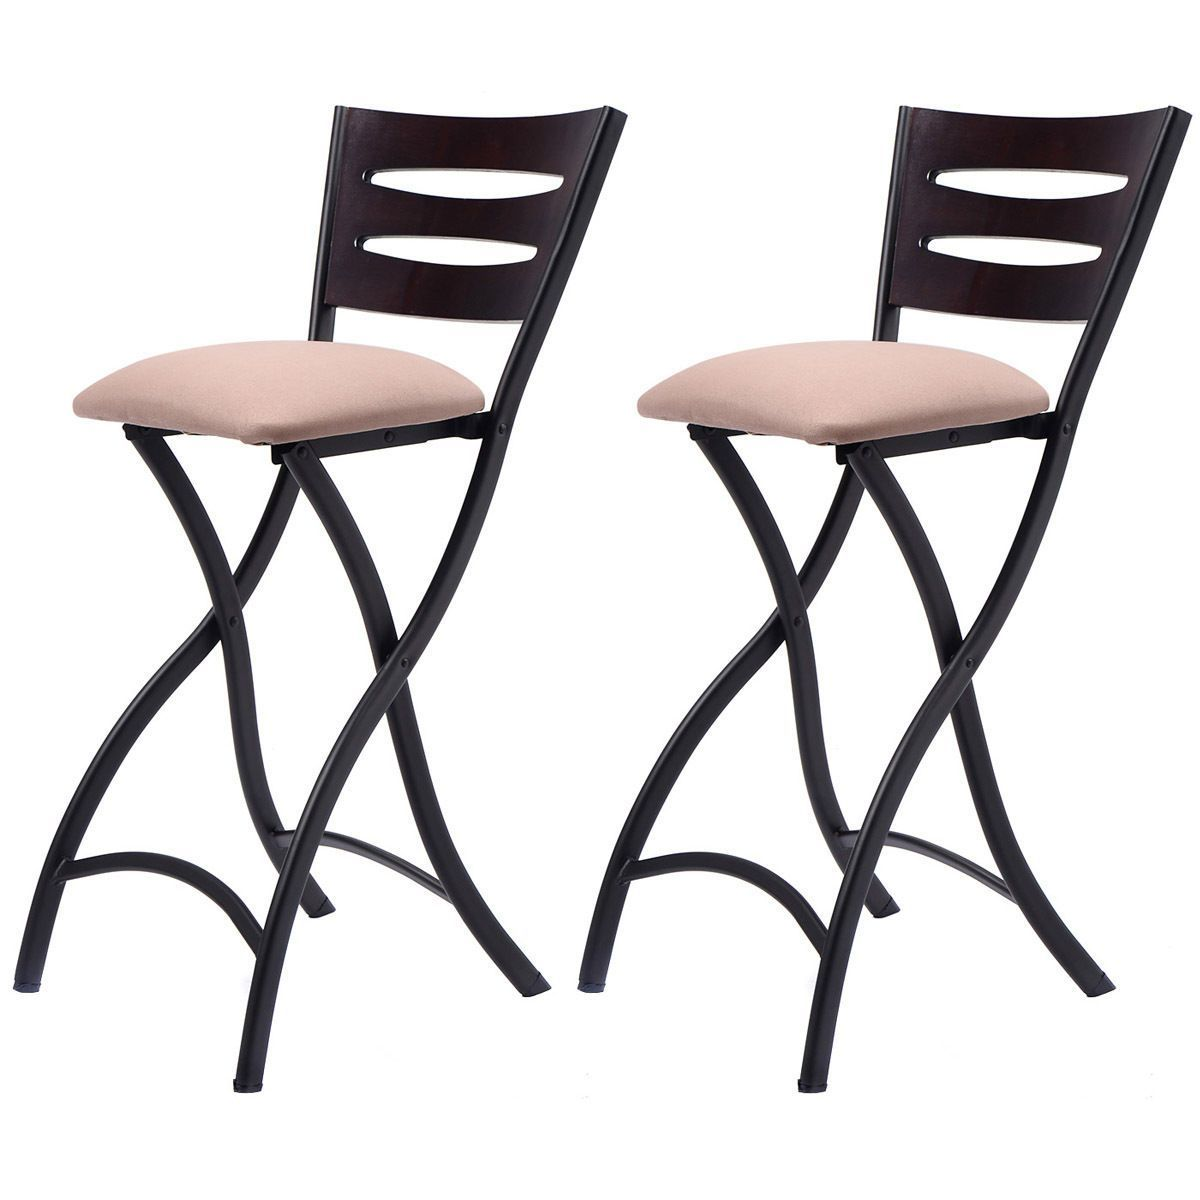 Set Of 2 Folding Bar Stools Counter Height Bistro Dining Kitchen Pub Chair